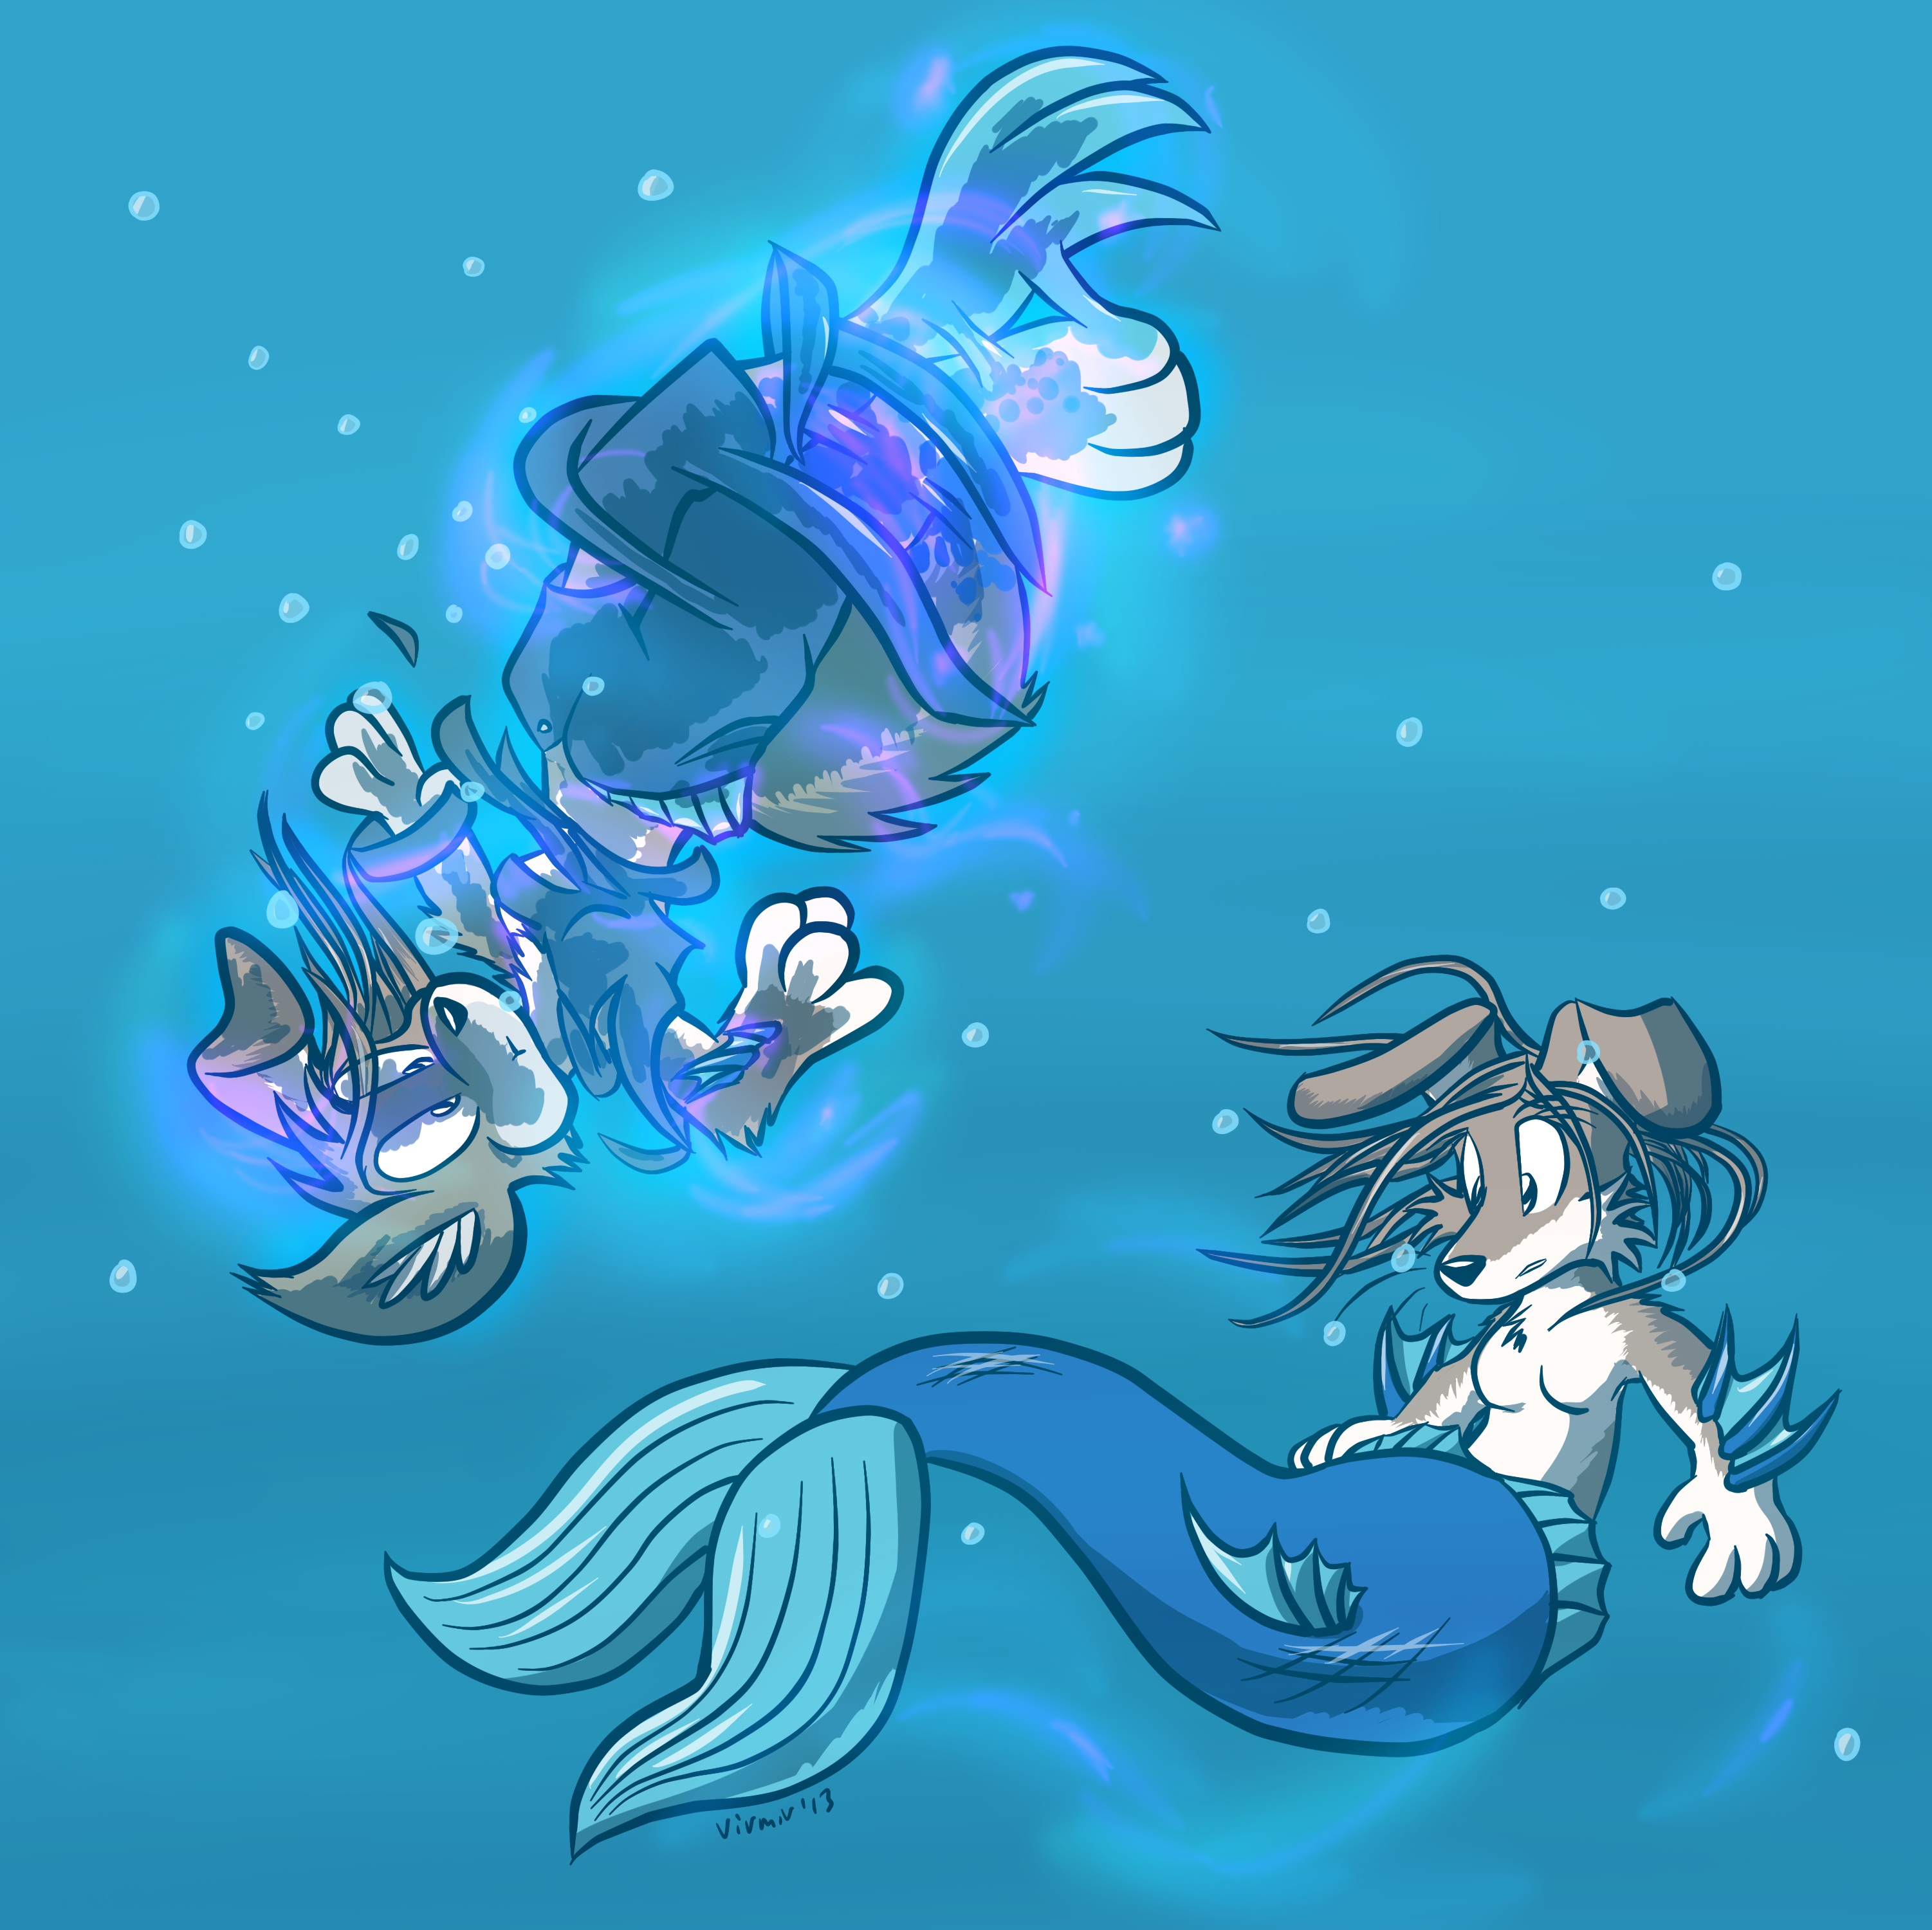 Art by Virmir: Mermaid Collie